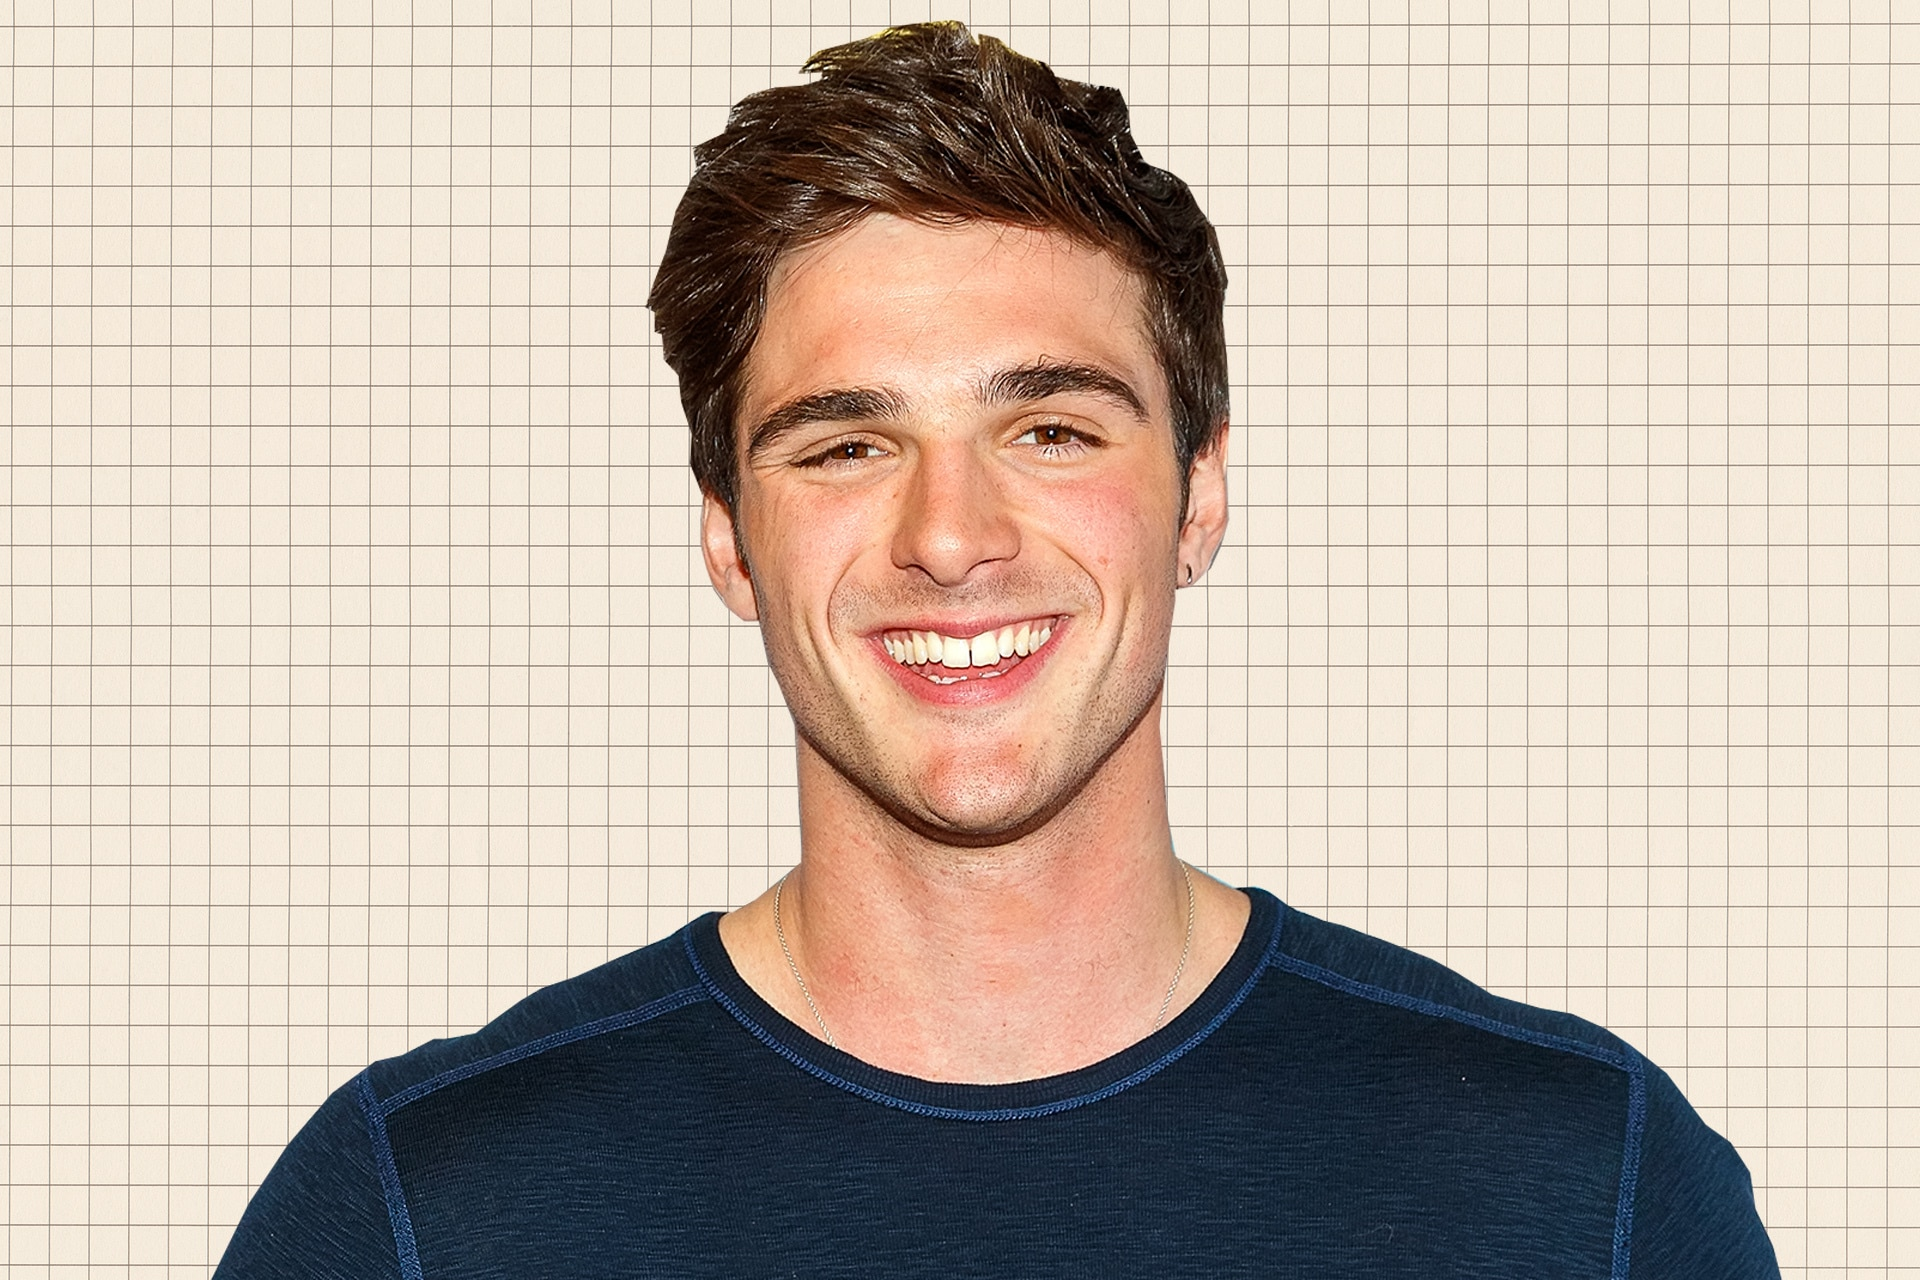 8 Things You Need To Know About Jacob Elordi The Actor That Sent Instagram Into Meltdown Gq